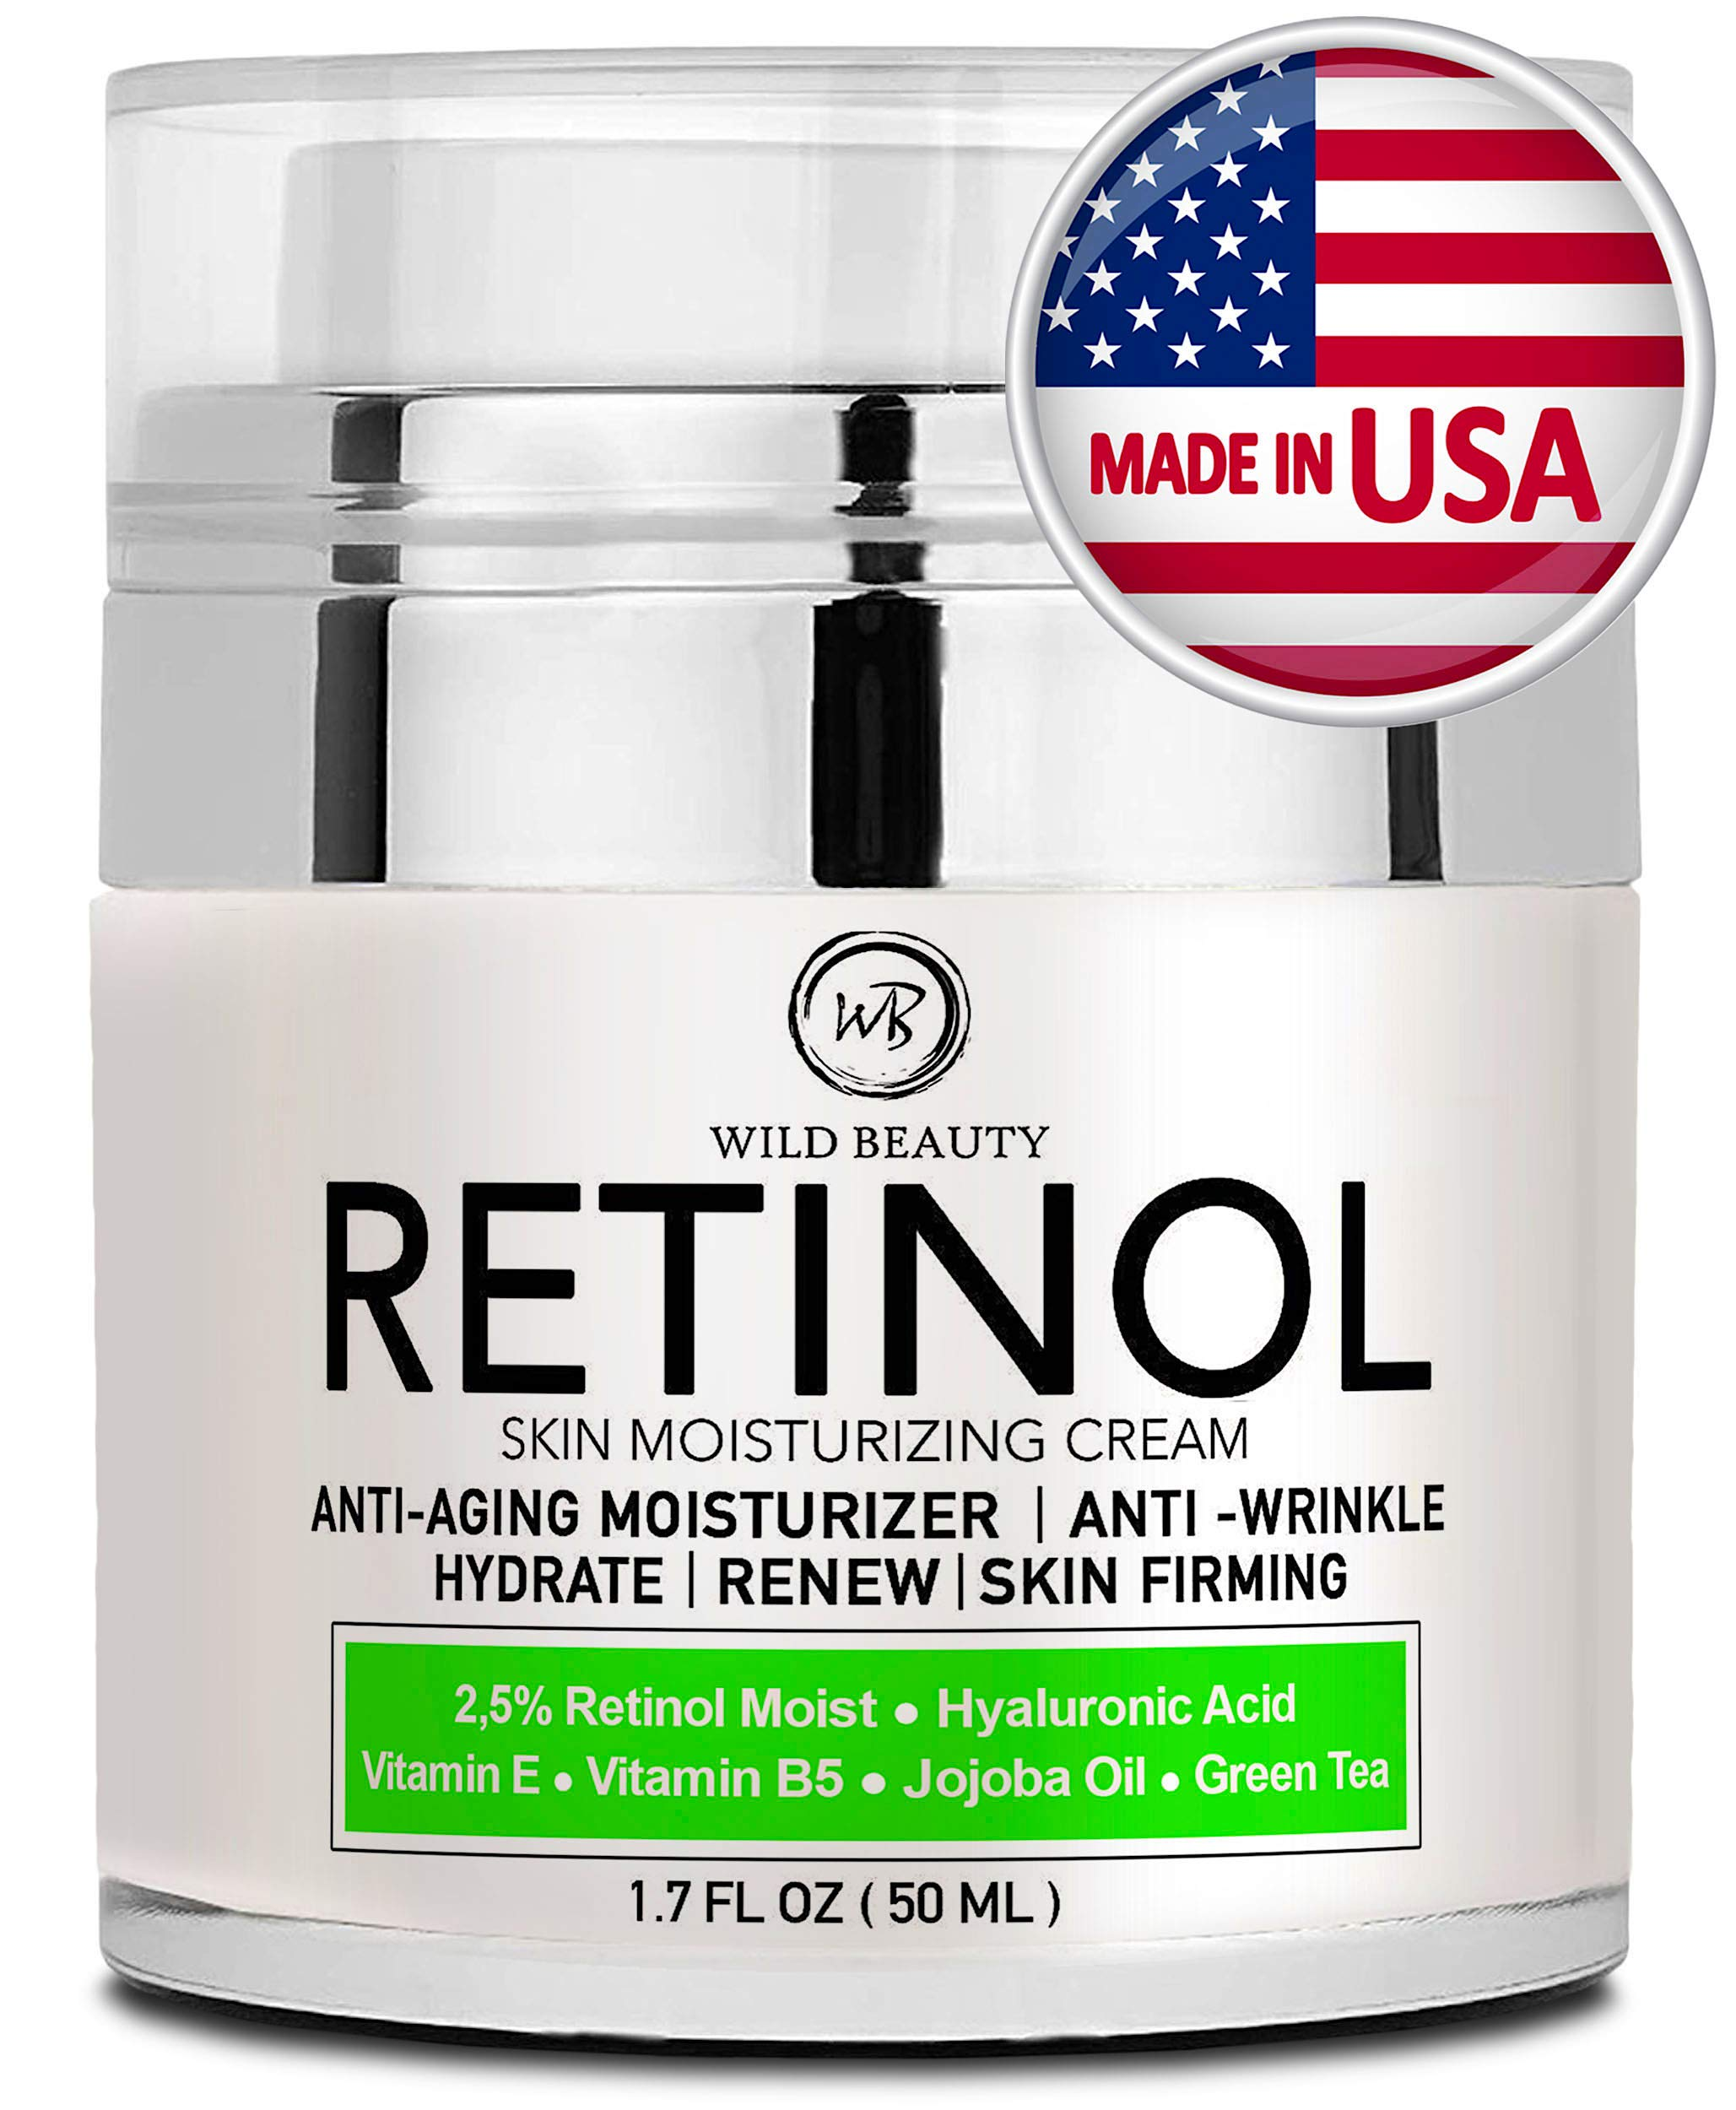 Best Eye Cream 2020.New 2020 Retinol Moisturizer Cream For Face And Eye Area Made In Usa With Hyaluronic Acid Active Retinol 2 5 Anti Aging Face Cream To Reduce